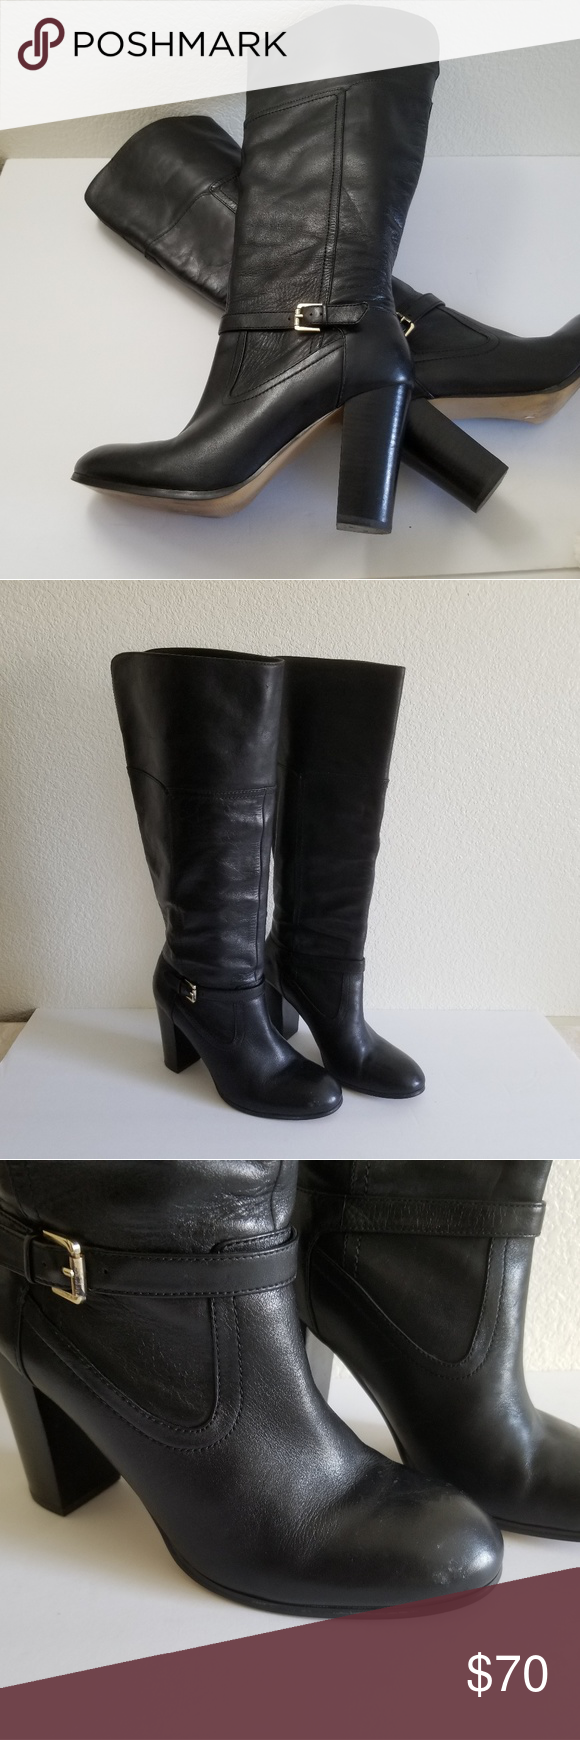 38a740bc7fa Audrey Brooke Women s Black Leather Boots Size 10 Audrey Brooke Women s  Black Leather Knee High Boots Size 10M. Pre-owned good condition.